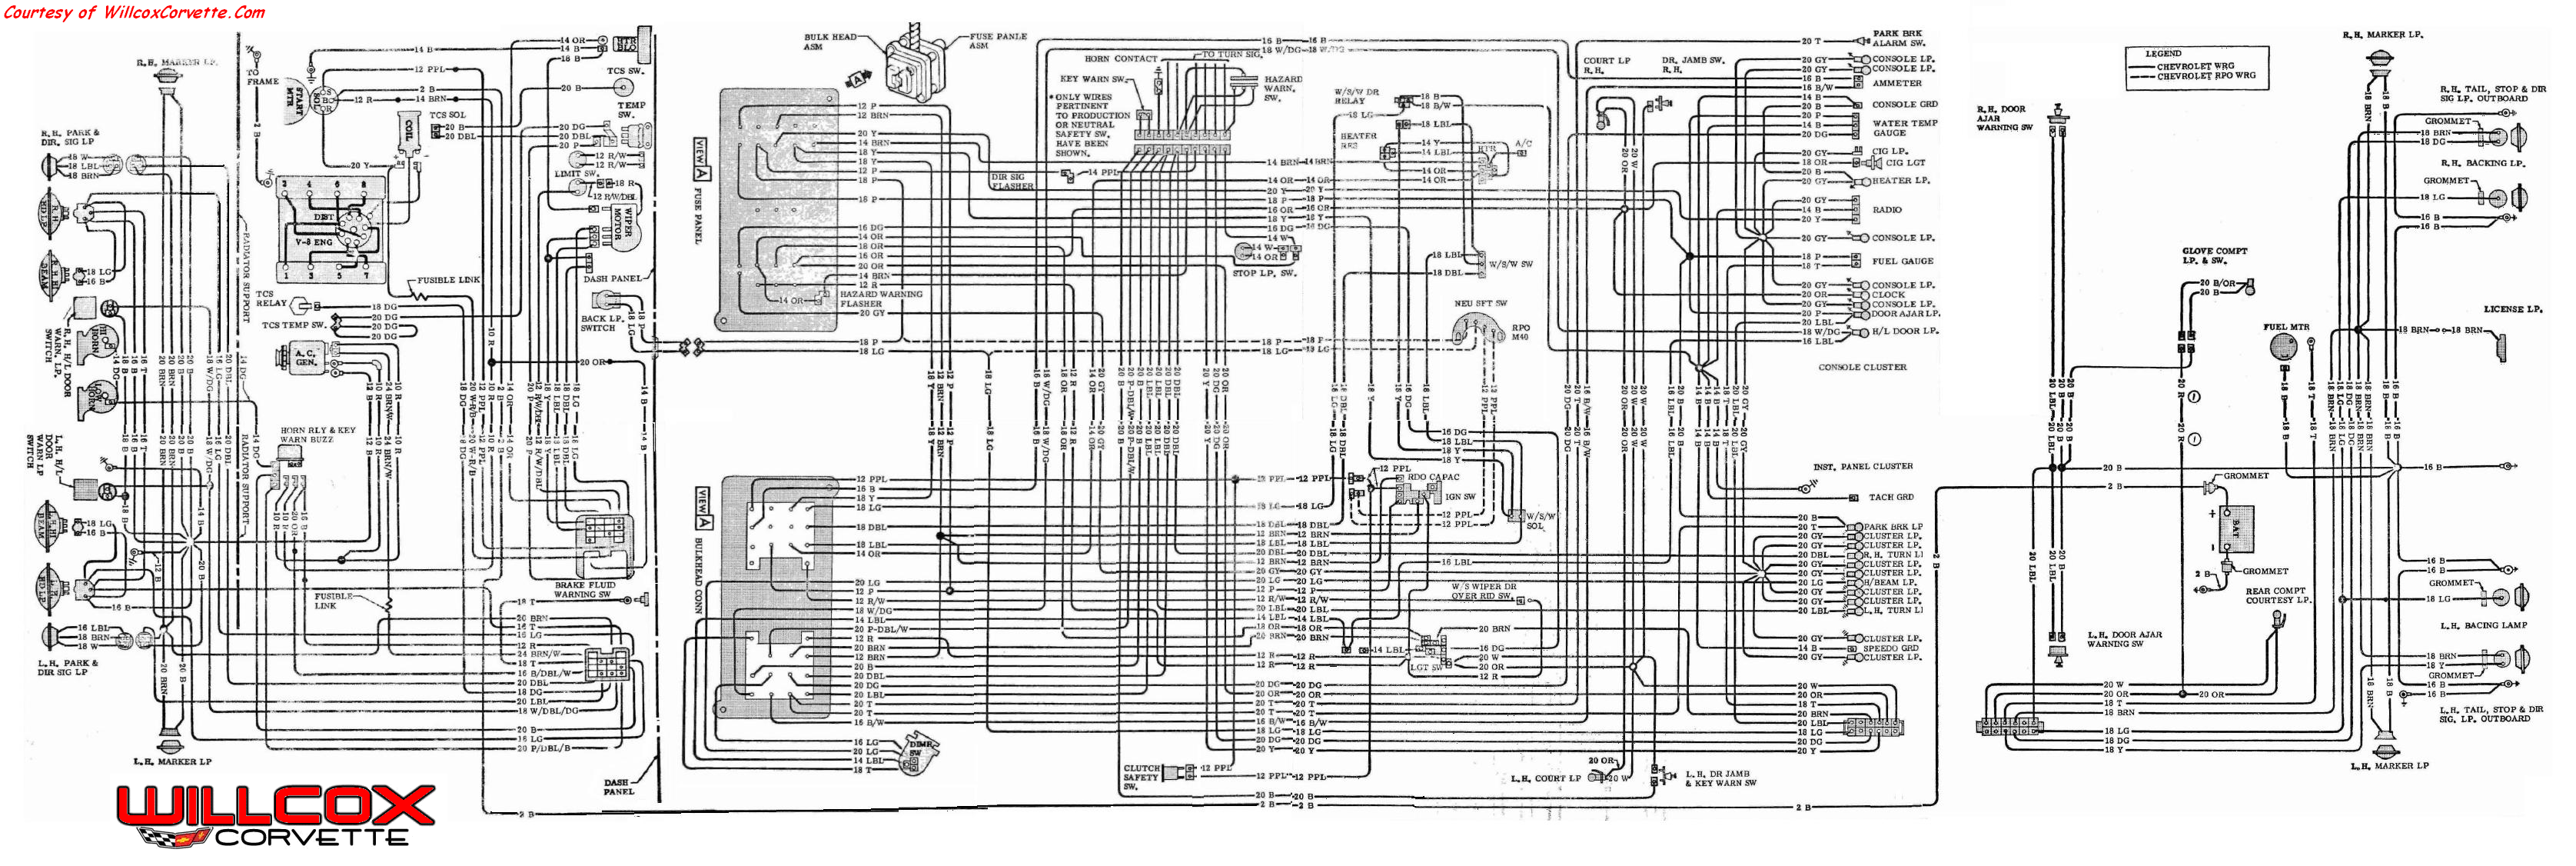 1970 corvette wire schematic tracer willcox corvette inc rh repairs willcoxcorvette com 1979 Corvette Wiring Schematic 83 Corvette Wiring Schematic